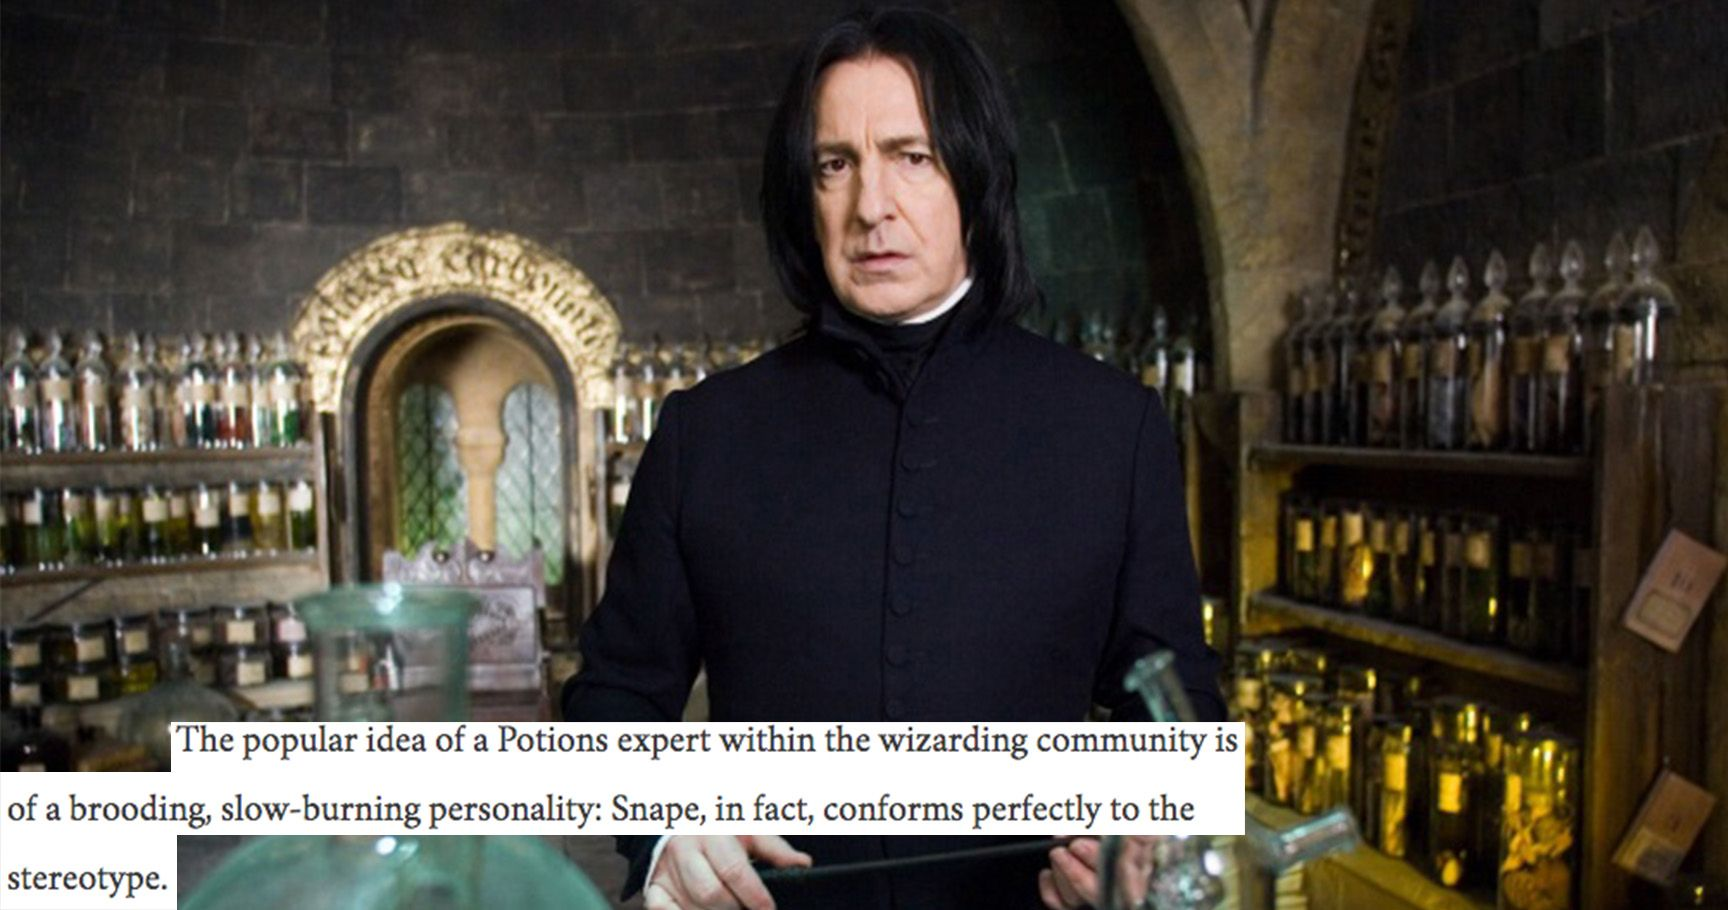 15 Jaw-Dropping Things We Never Knew About The 'Harry Potter' World